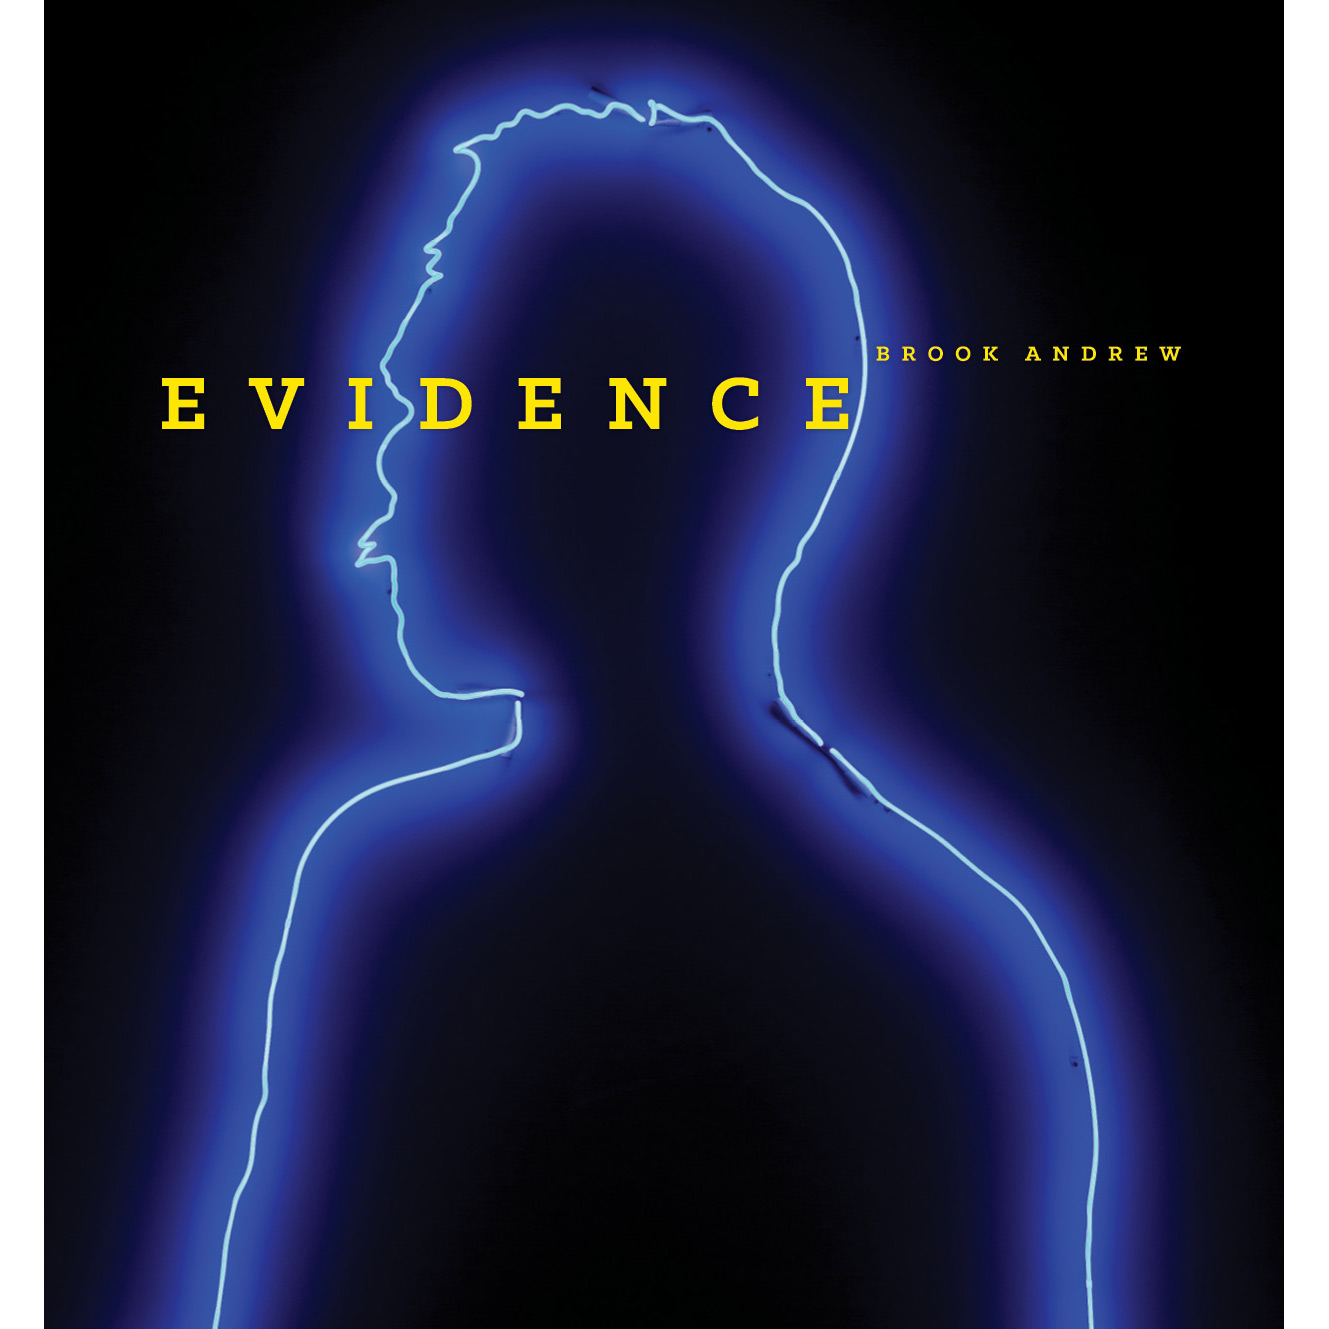 Book cover, Evidence: Brook Andrew.